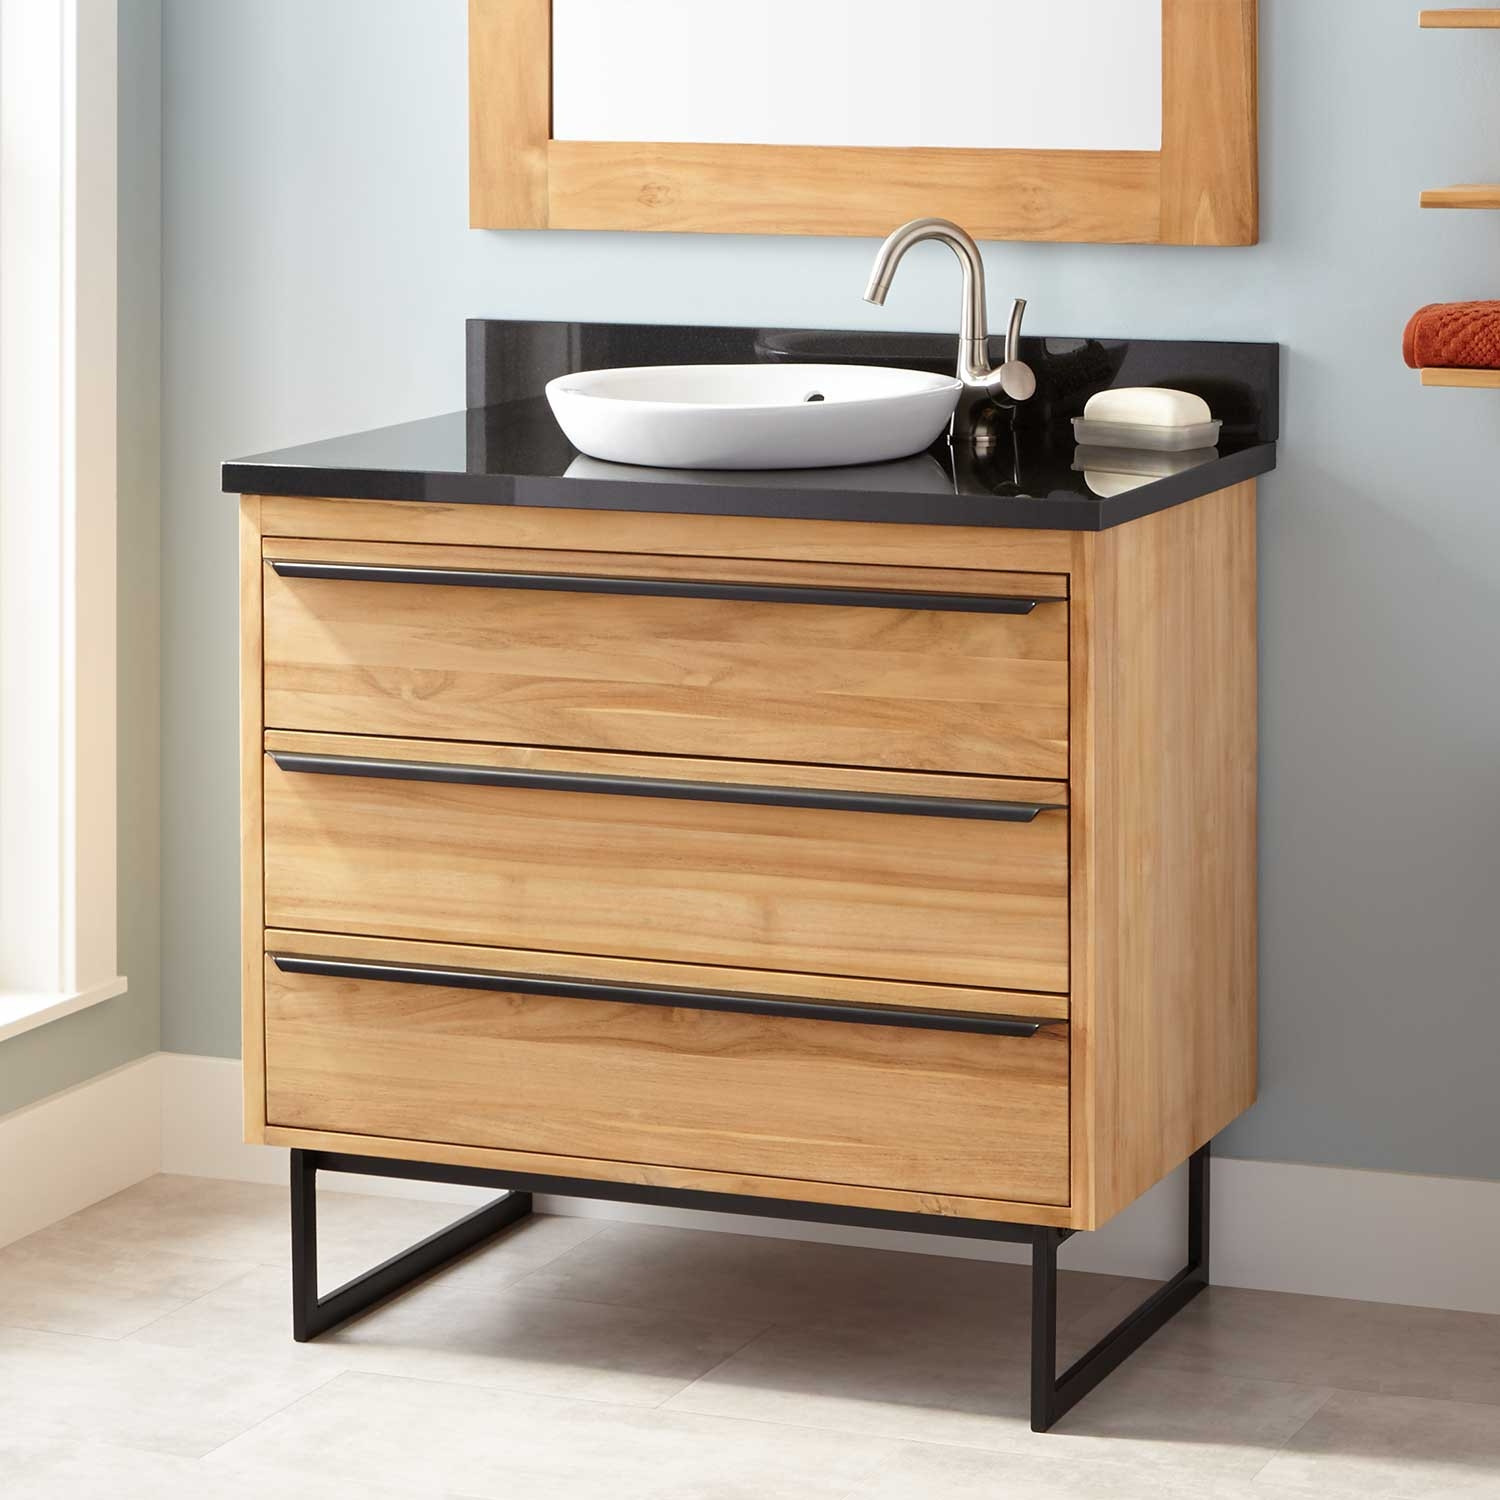 Hamilton plumber installed contrasting bathroom vanity